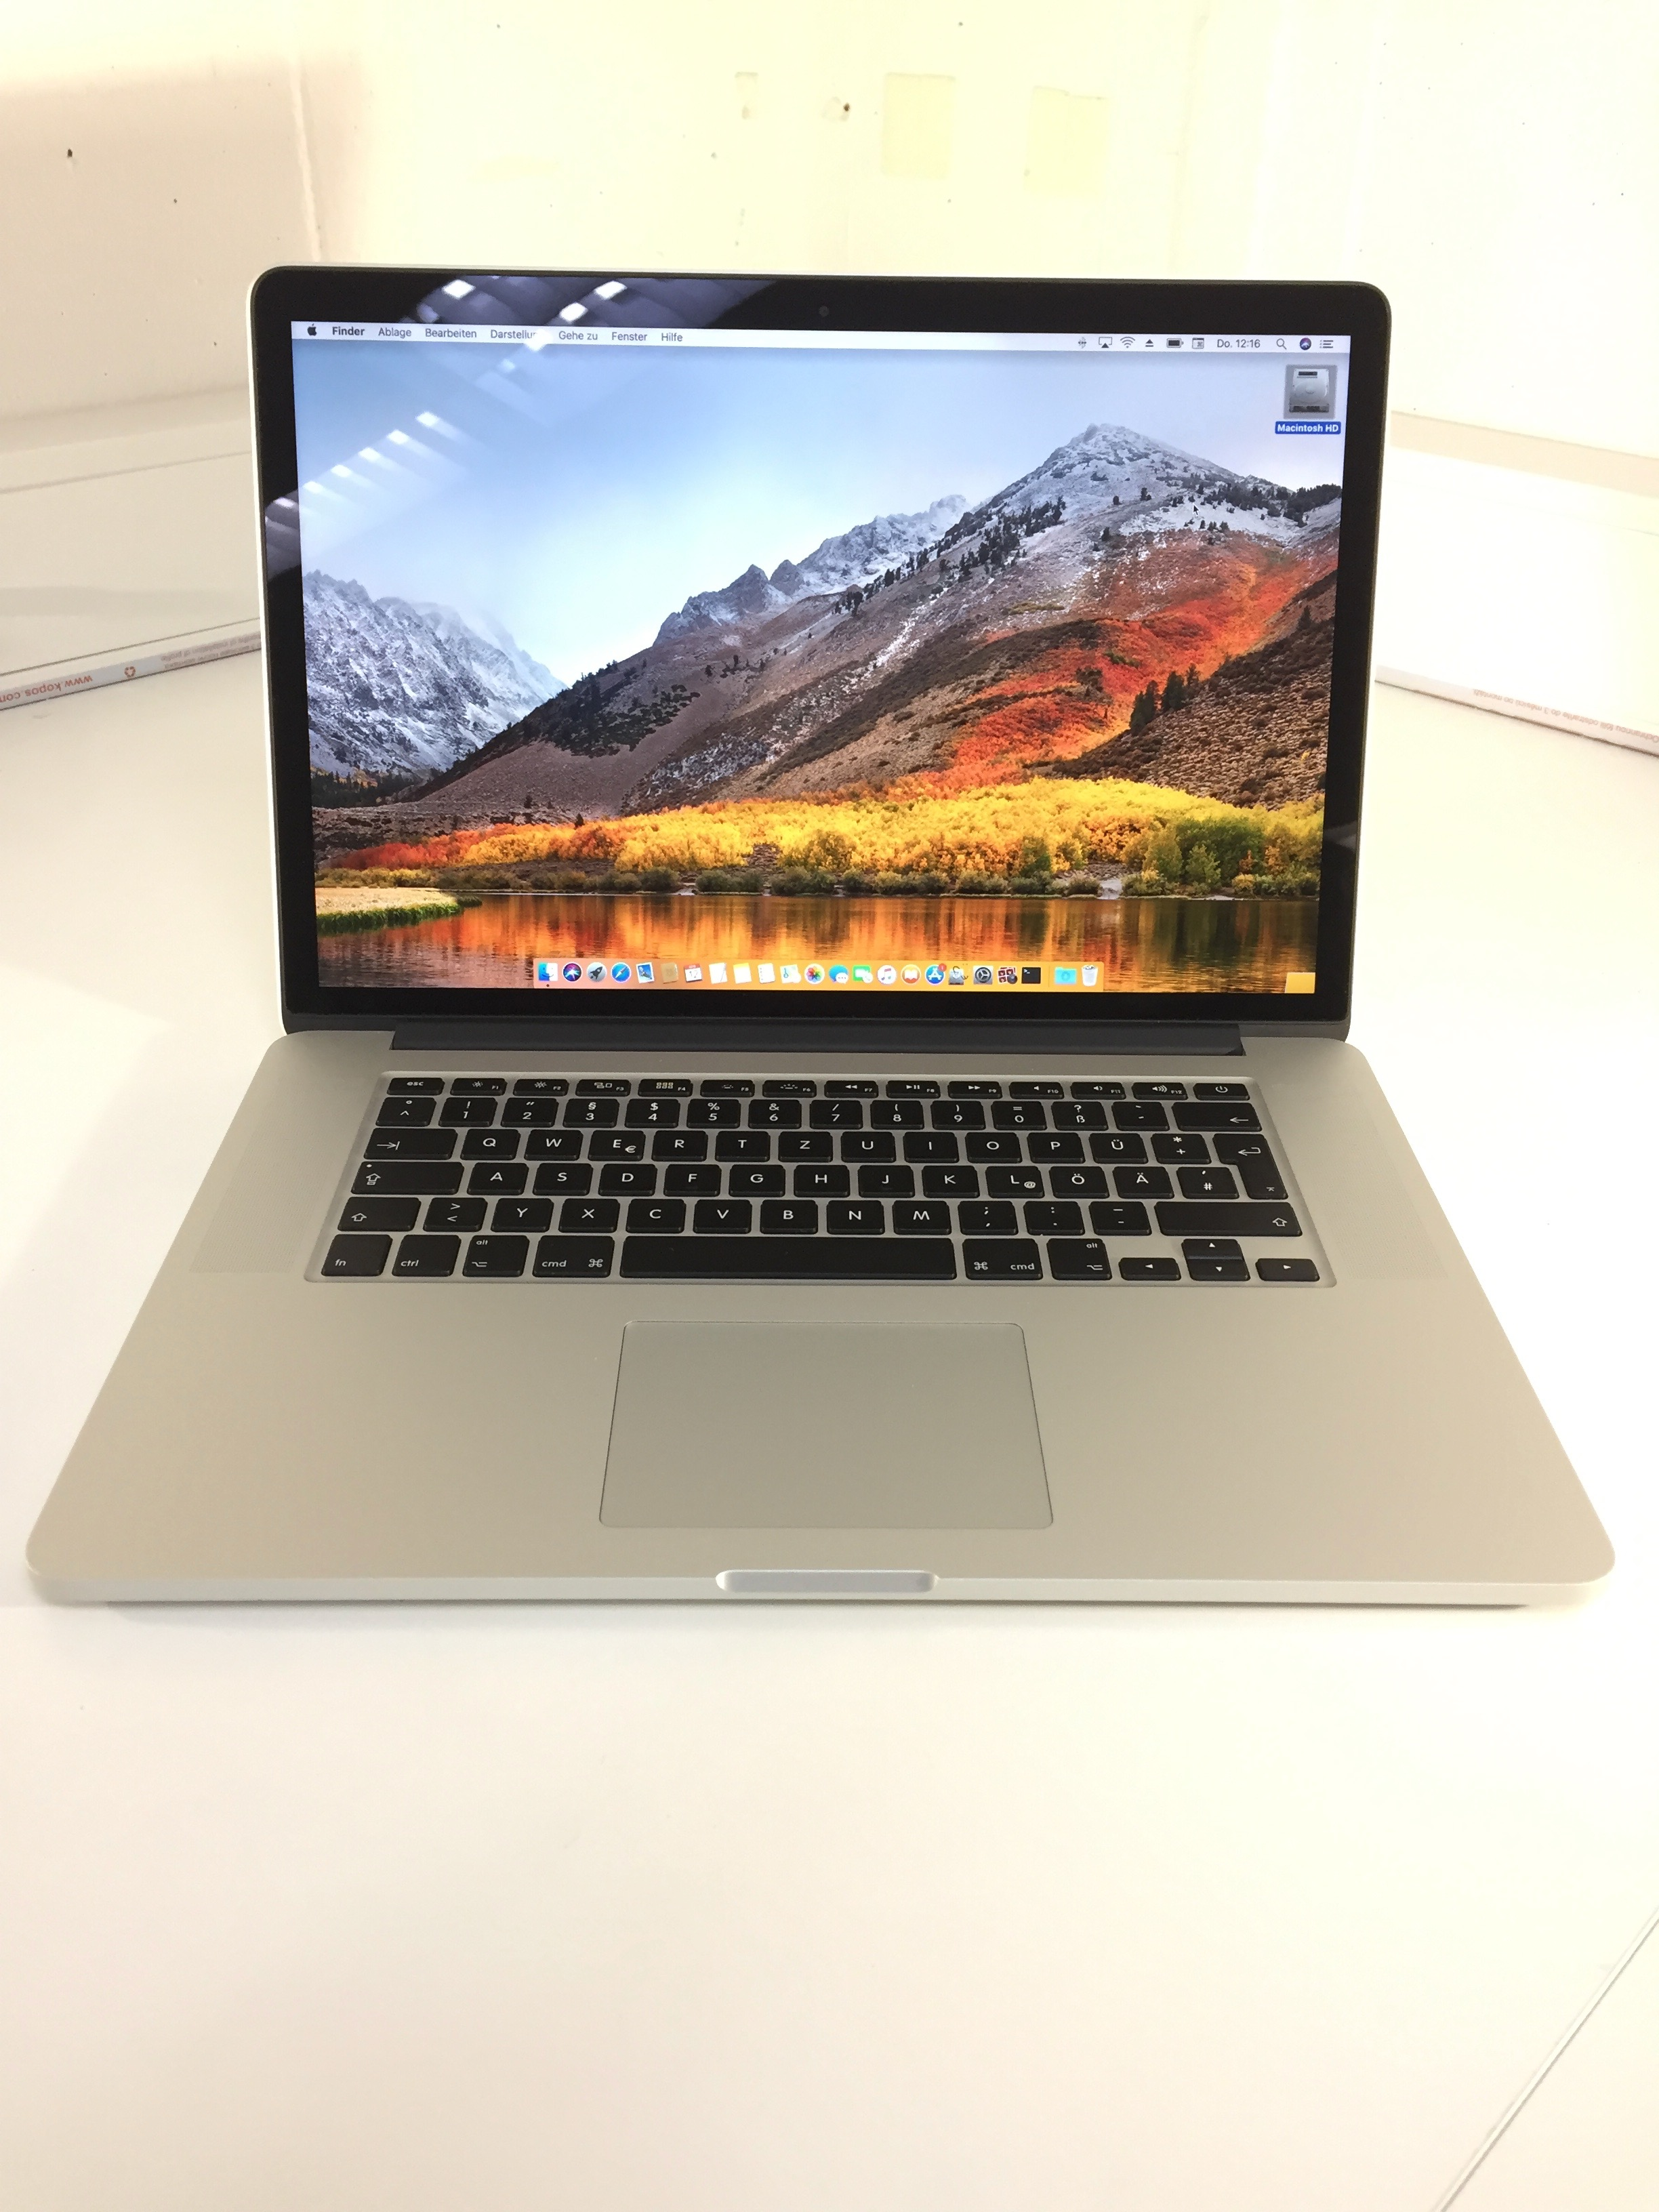 MacBook Pro 15-inch Retina, 2.2 GHz Intel Core i7, 16 GB, 256 GB Flash, Bild 1